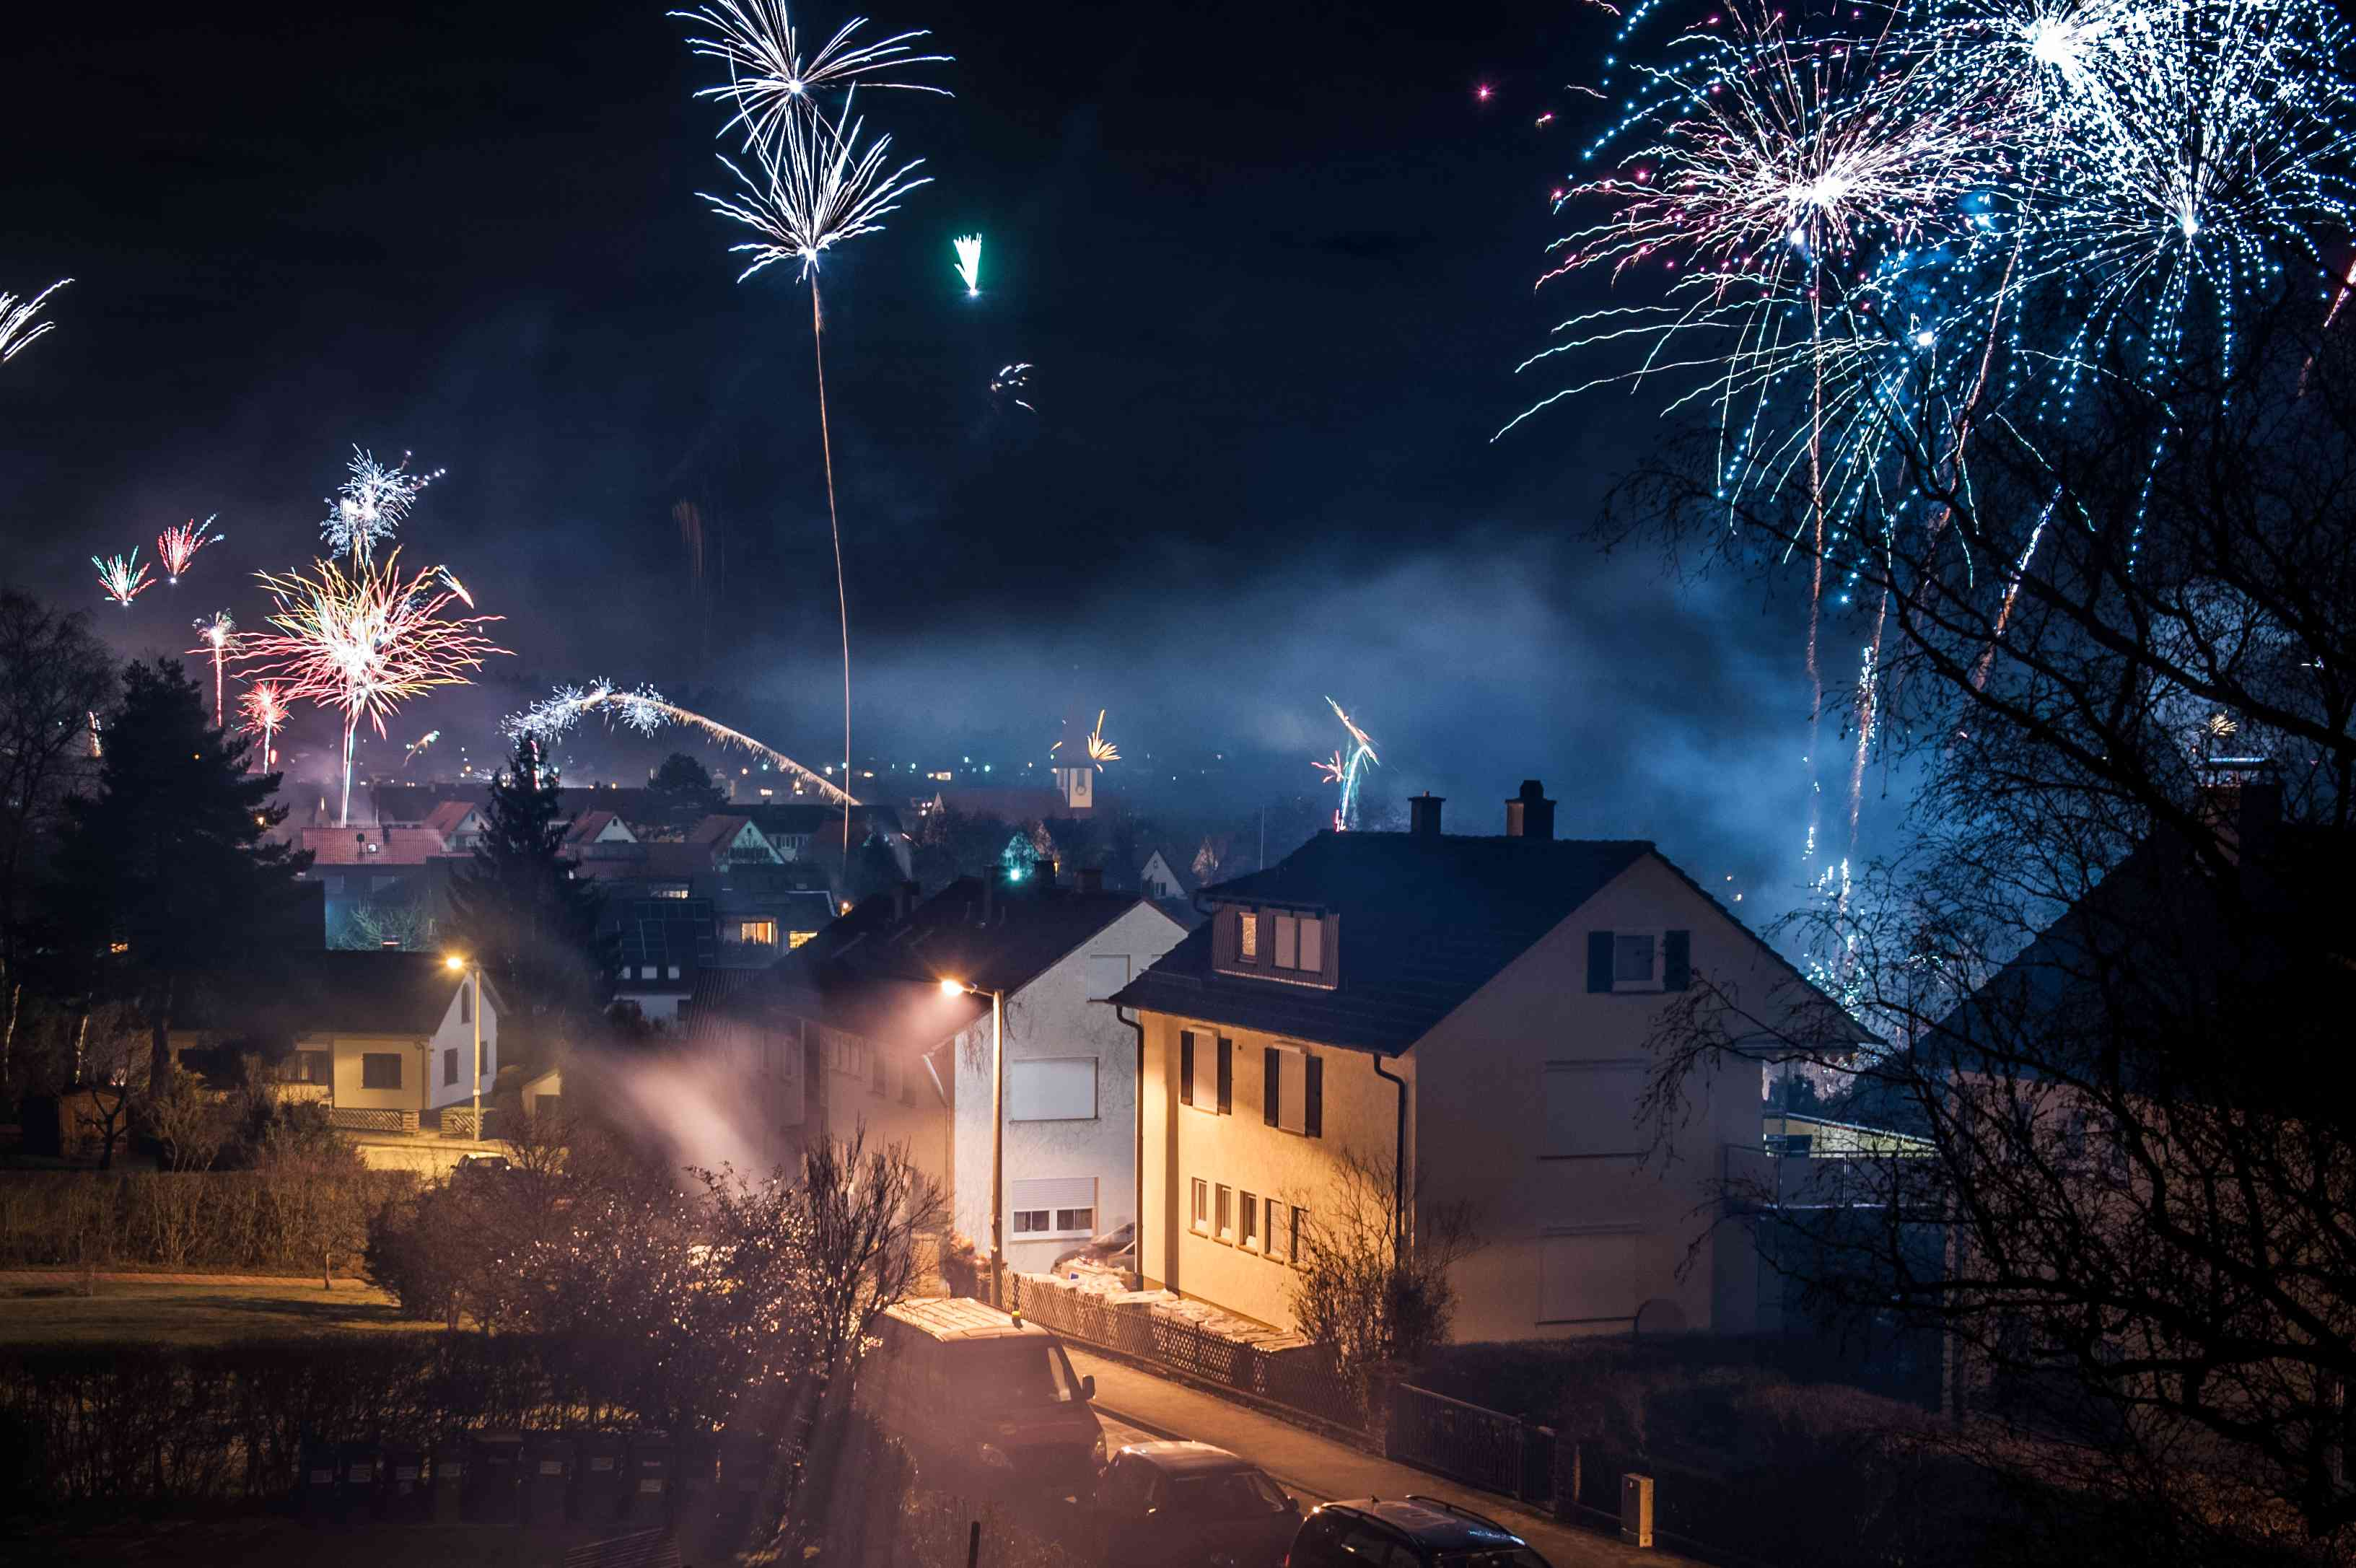 A neighborhood at night with fireworks in the sky